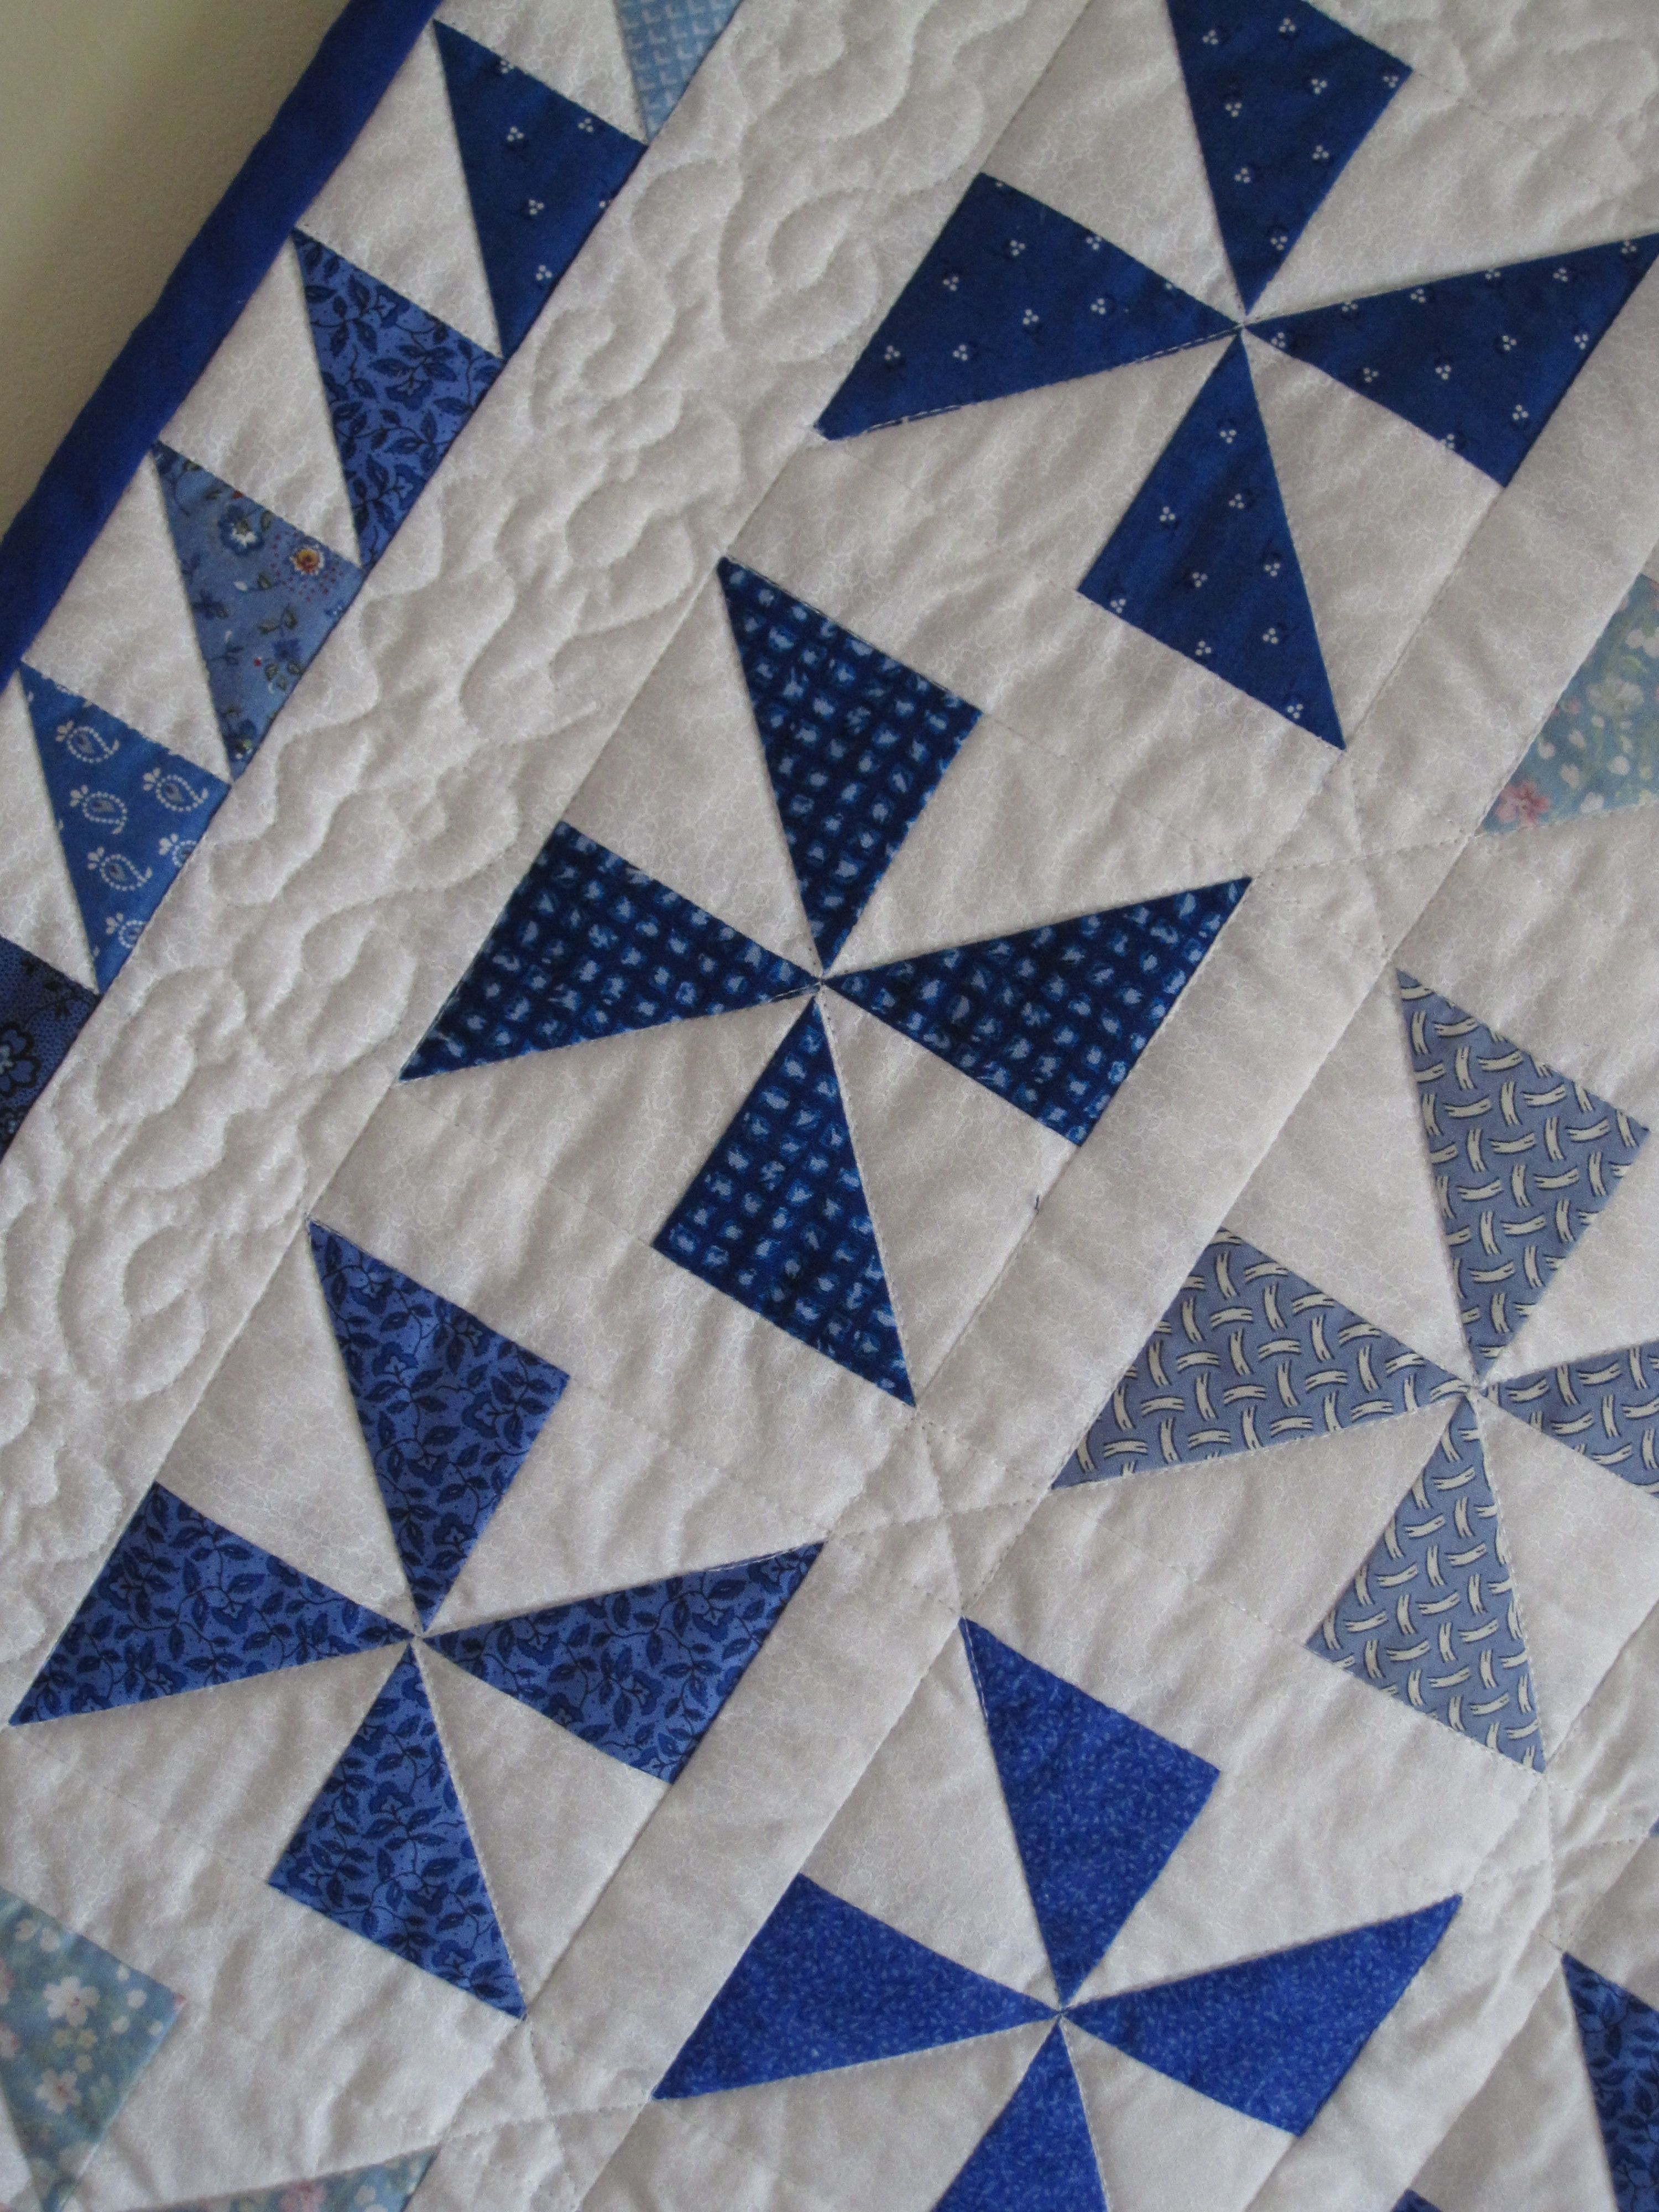 quilt of to locate baby image pattern star history how quilting